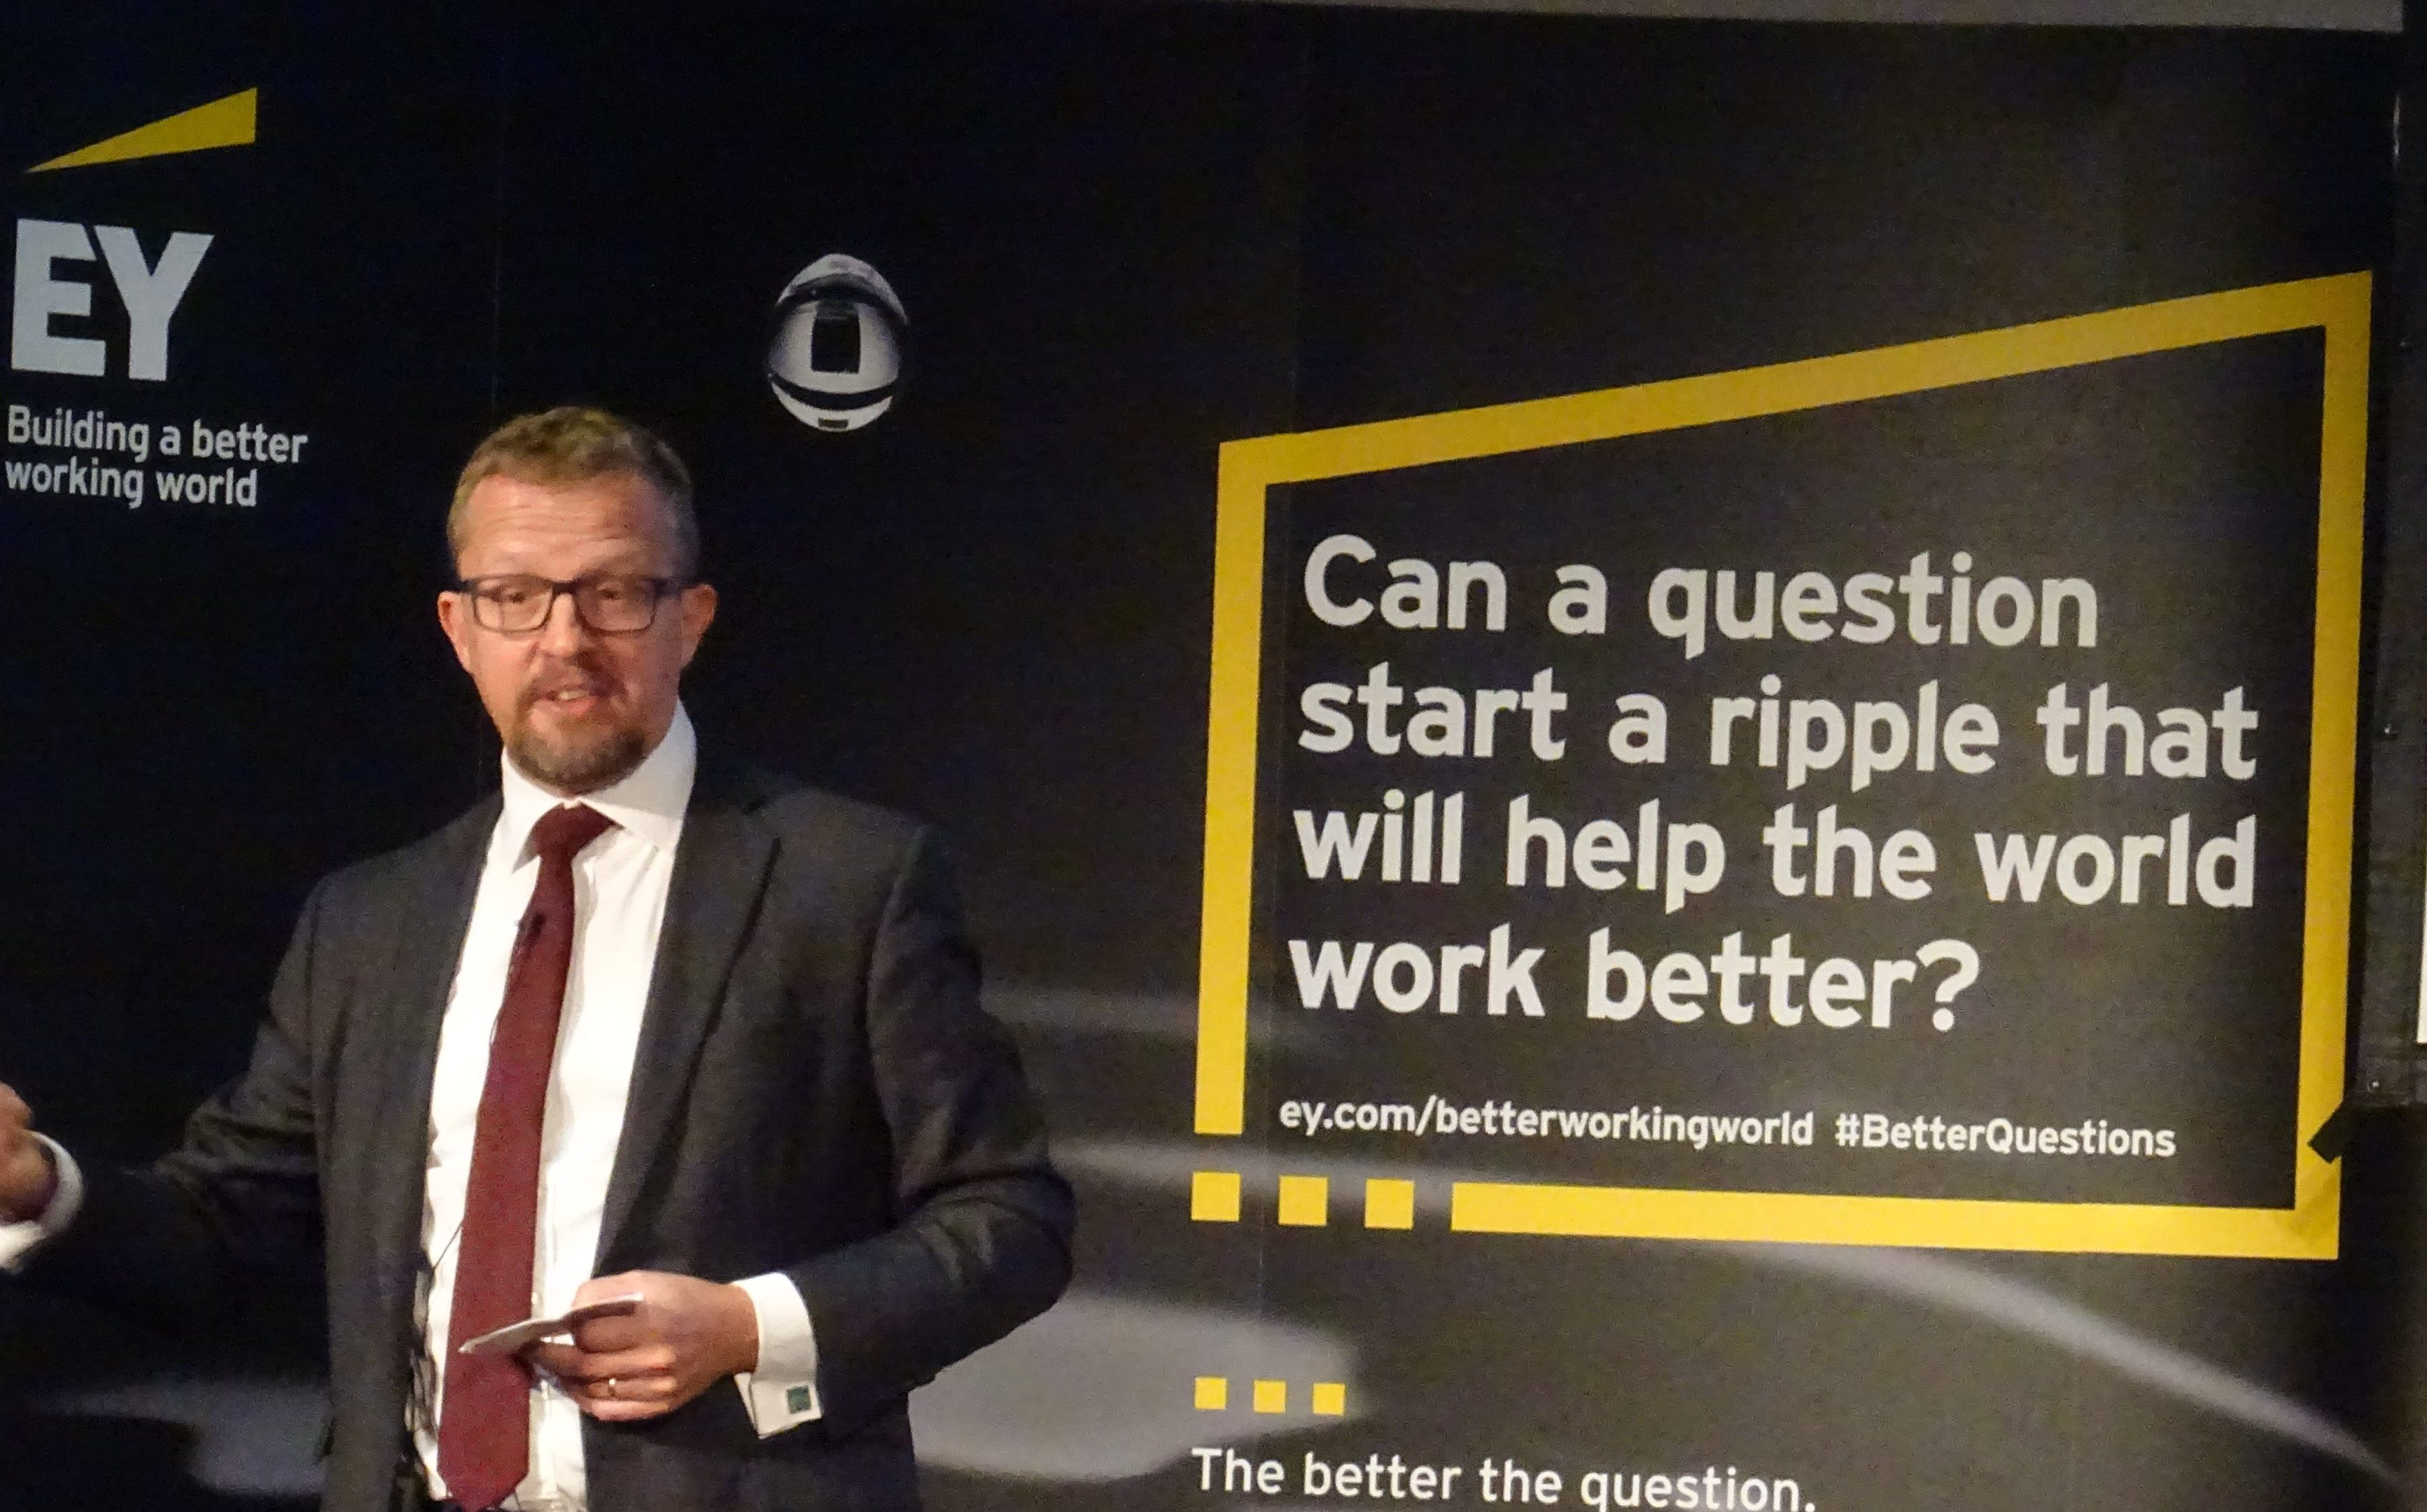 Mark Hutchinson of professional services firm EY